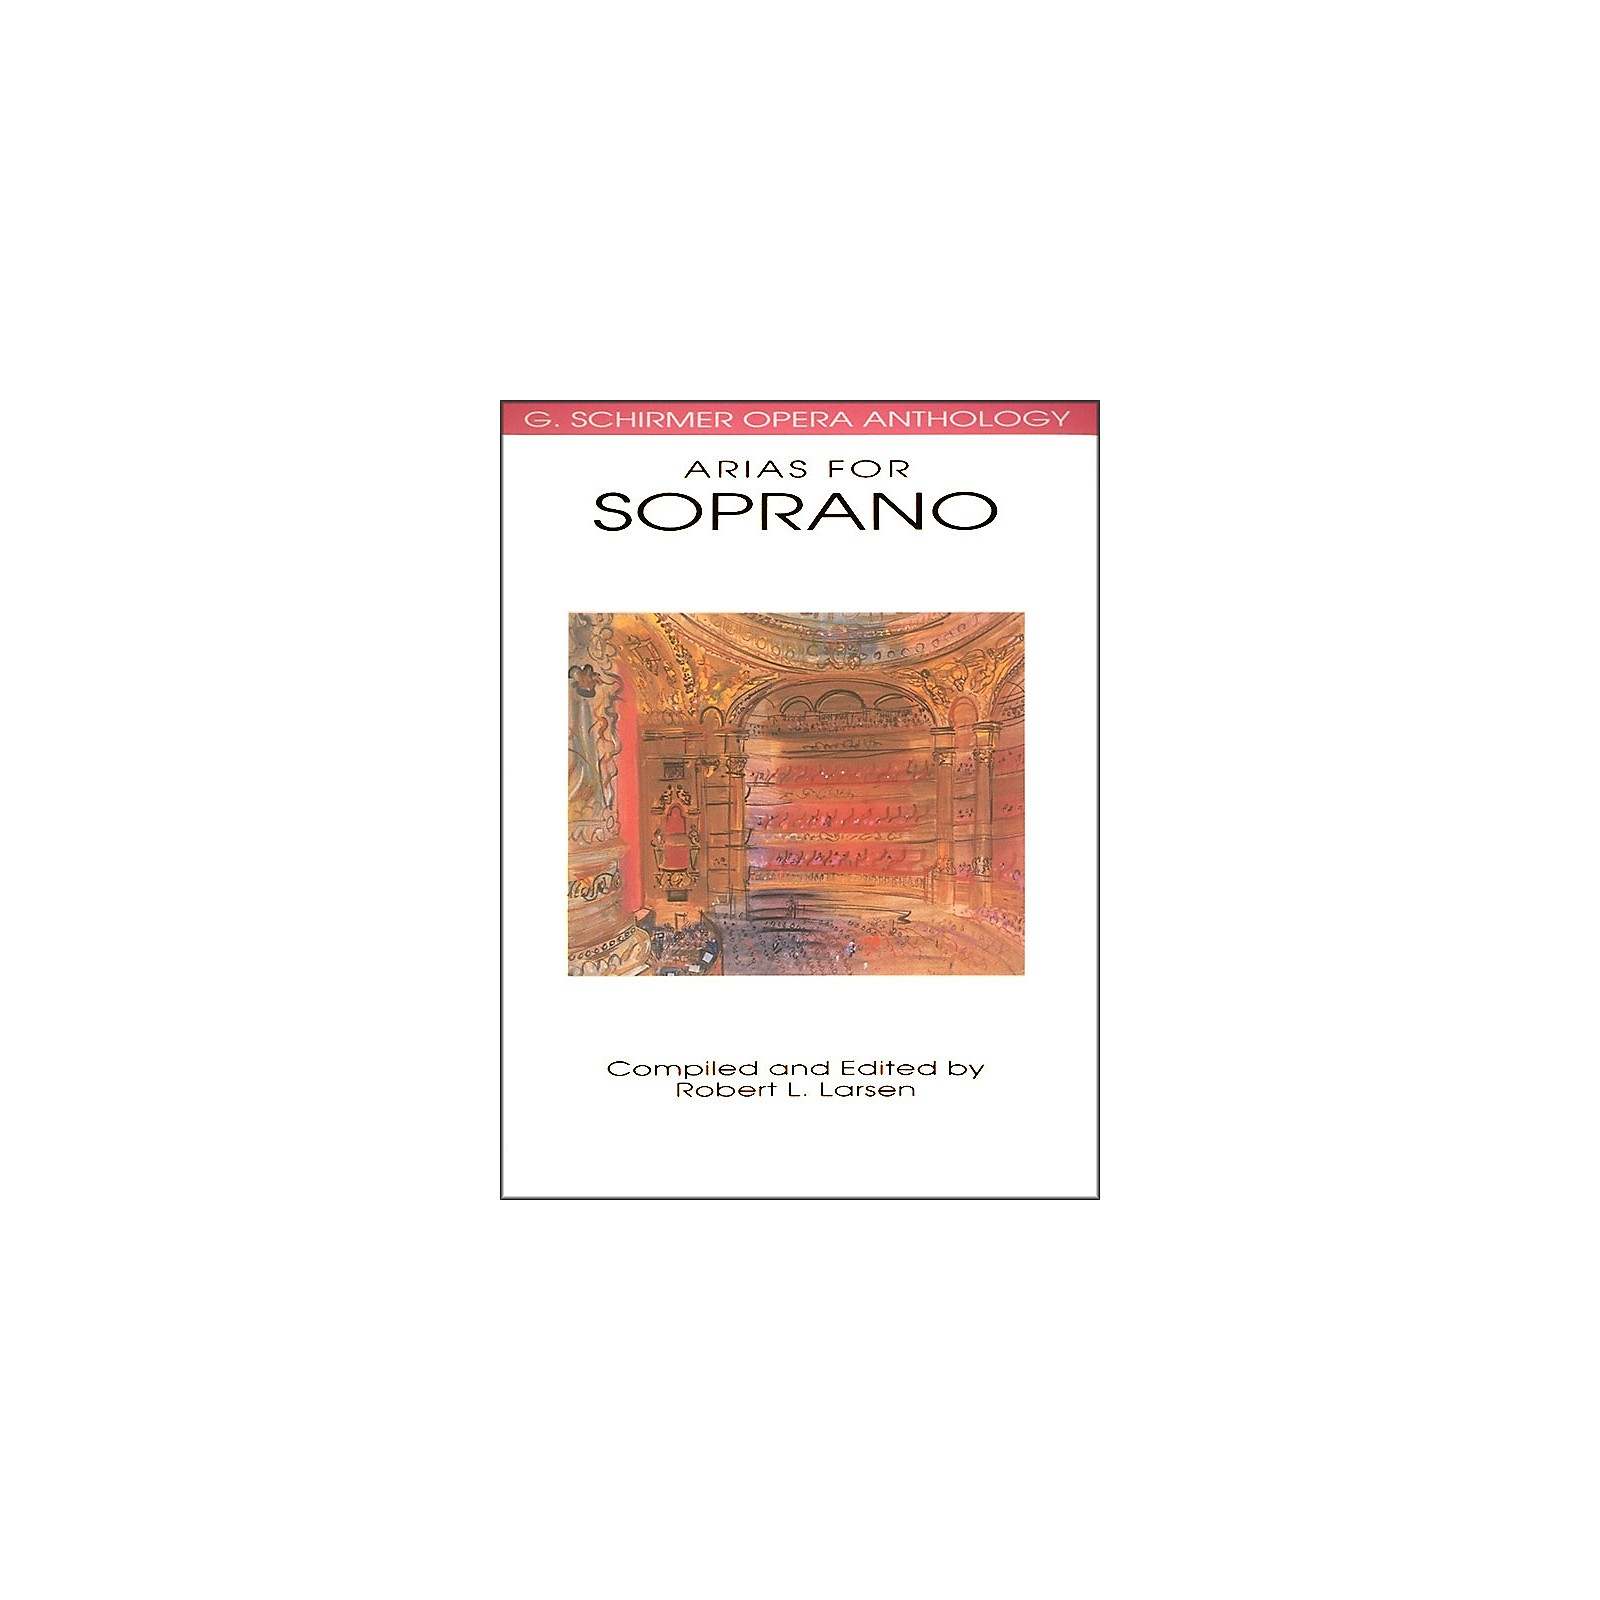 G. Schirmer Arias for Soprano G Schirmer Opera Anthology